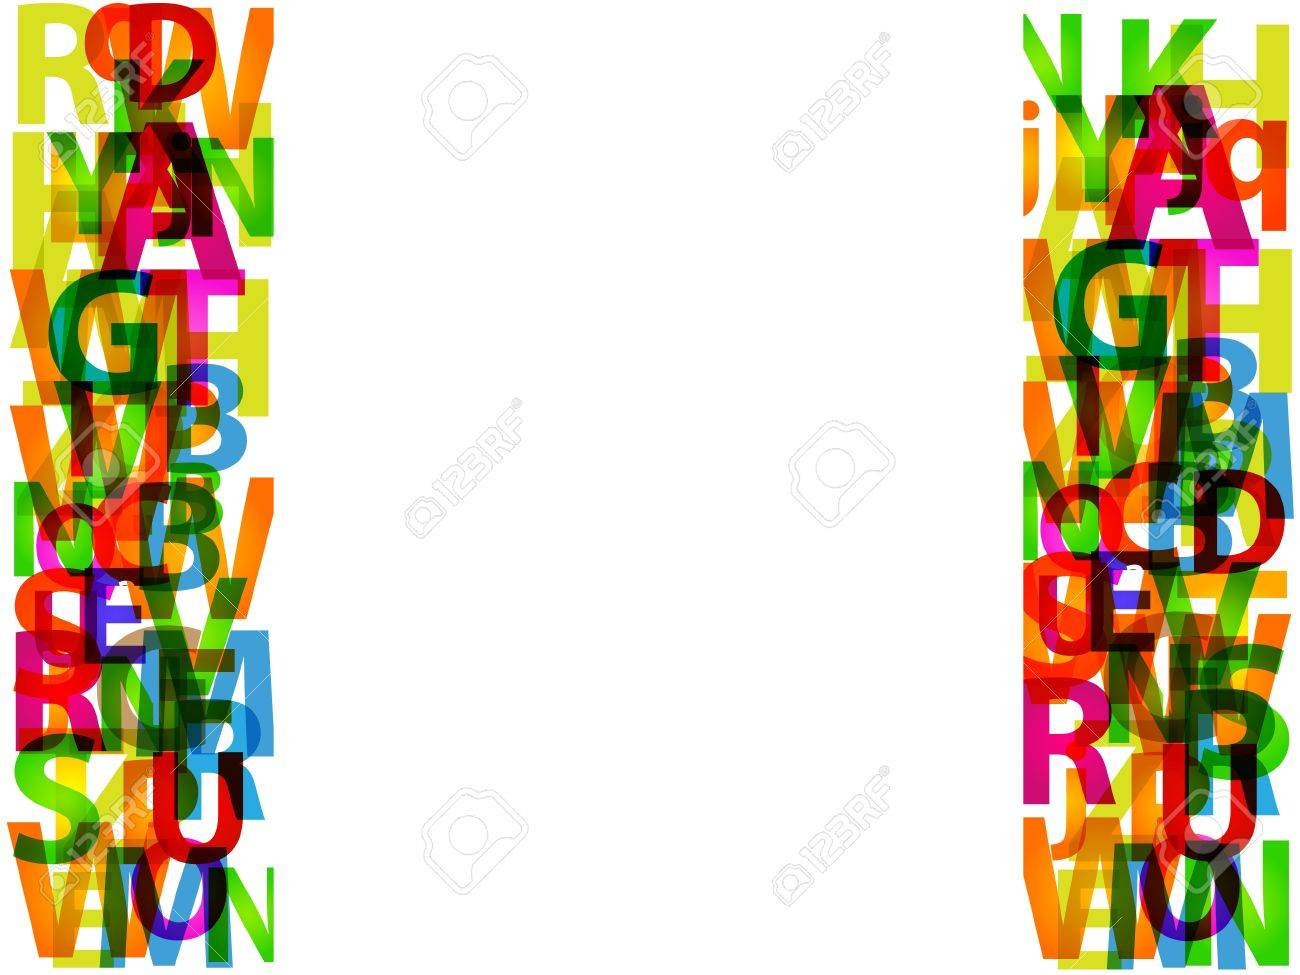 Line Art Letters : Alphabet letters vector background royalty free cliparts vectors